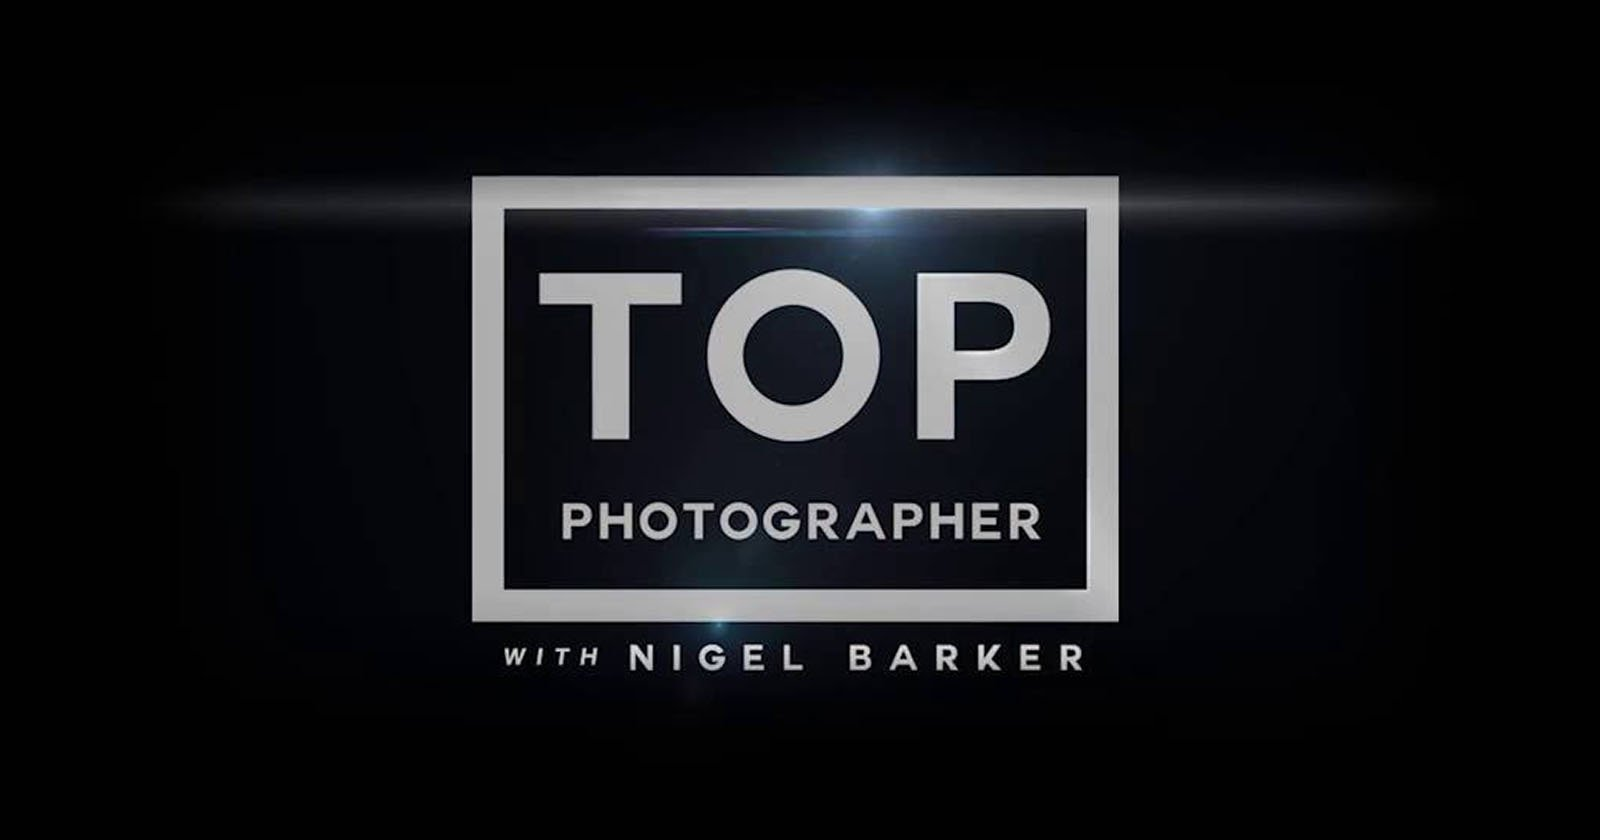 Here's the Complete First Season of 'Top Photographer'